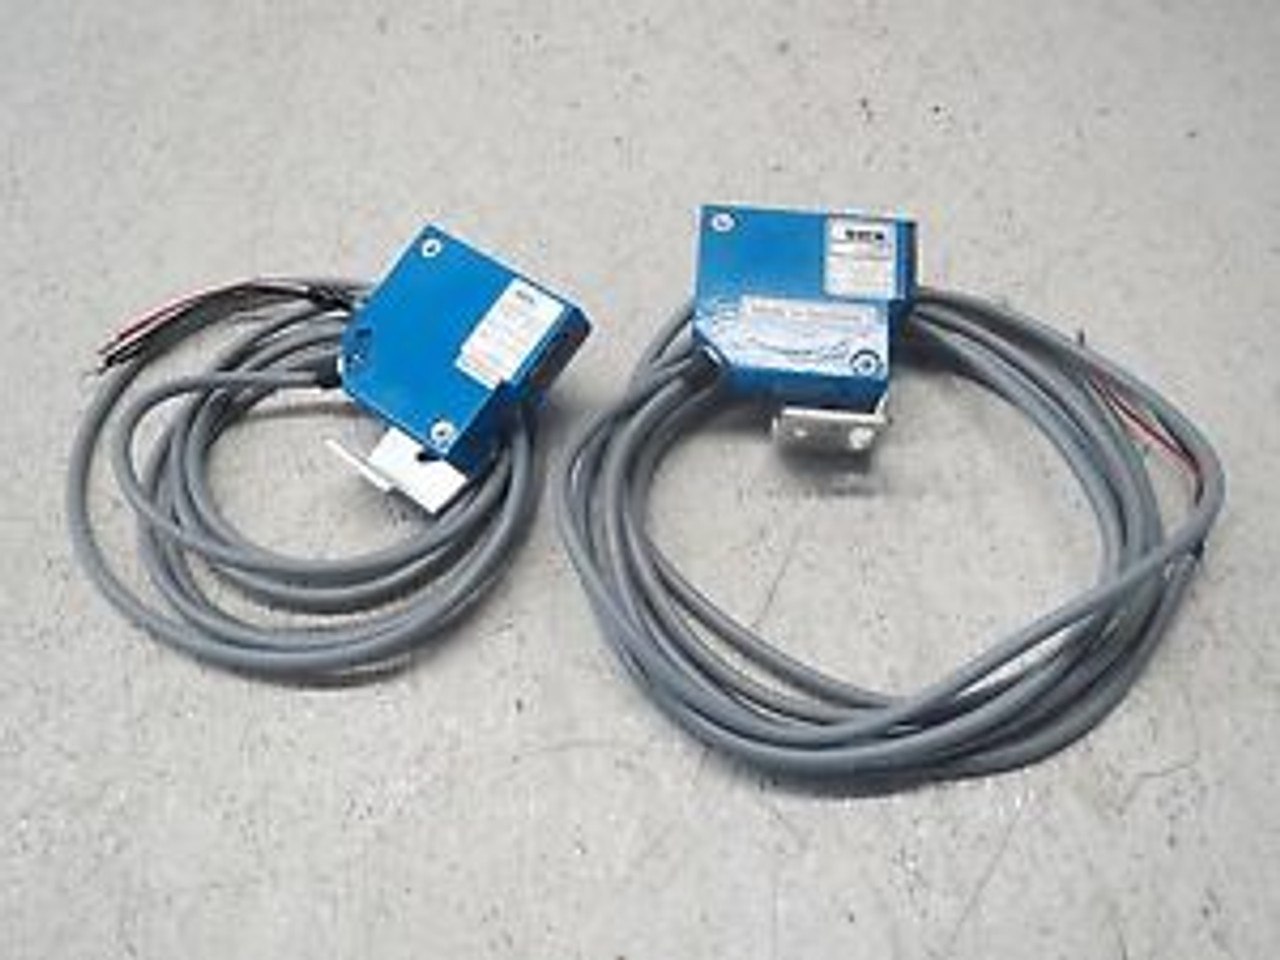 Sick Optik cable pls-cs7 30-meters box has been opened and parts inspected